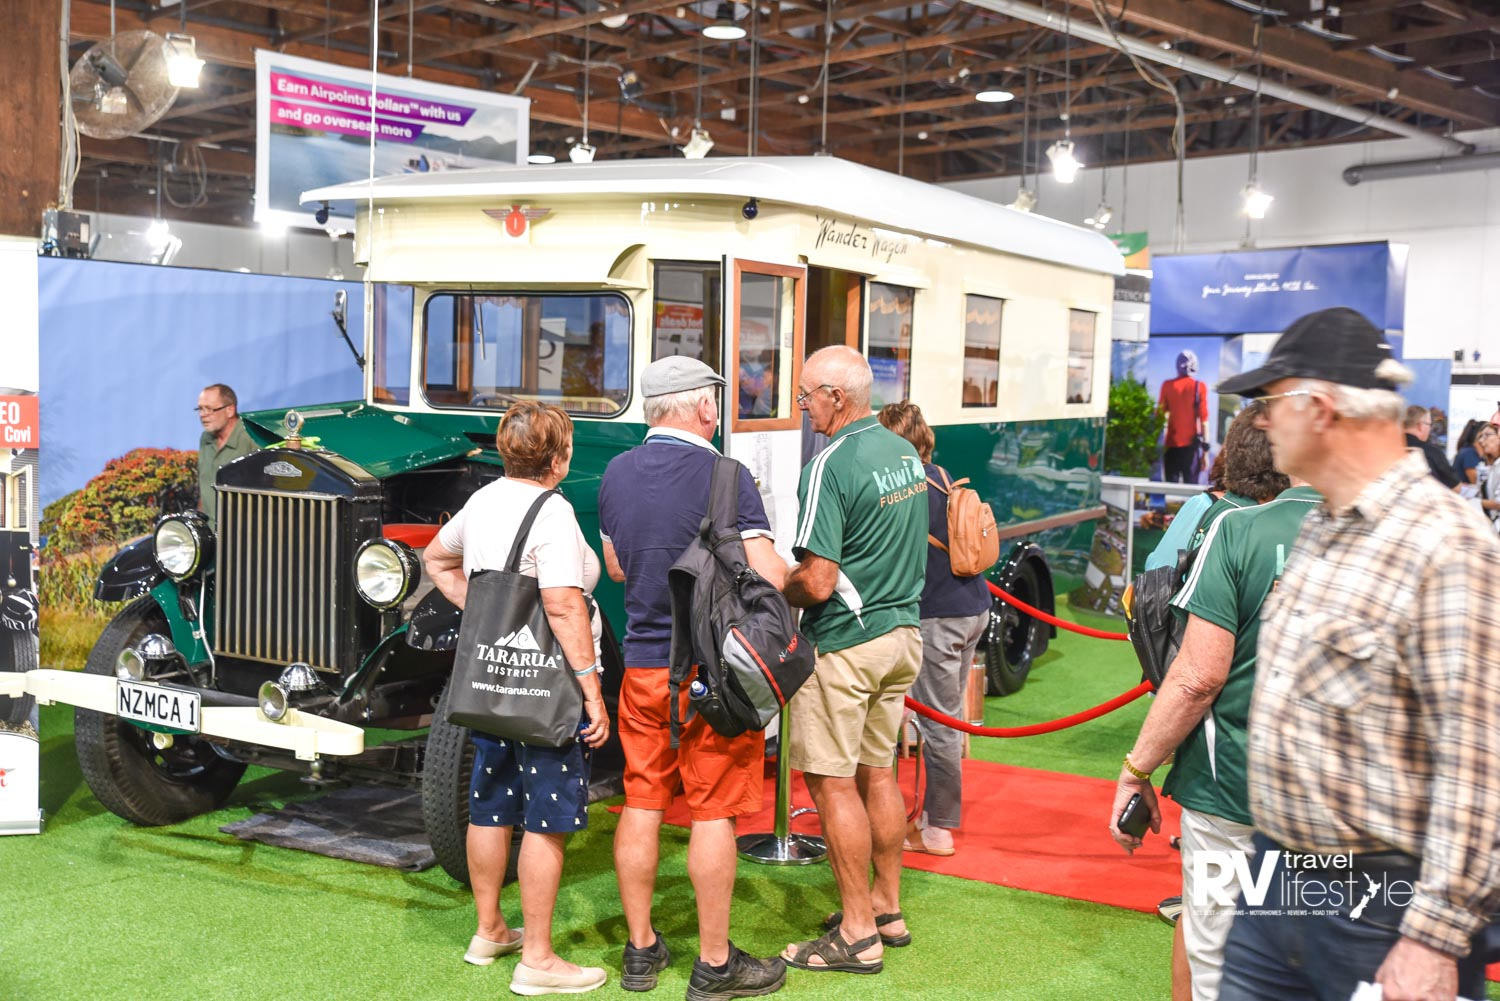 NZMCA No 1 fully restored motorhome took pride of place on the stand, and had a queue to view most of the time